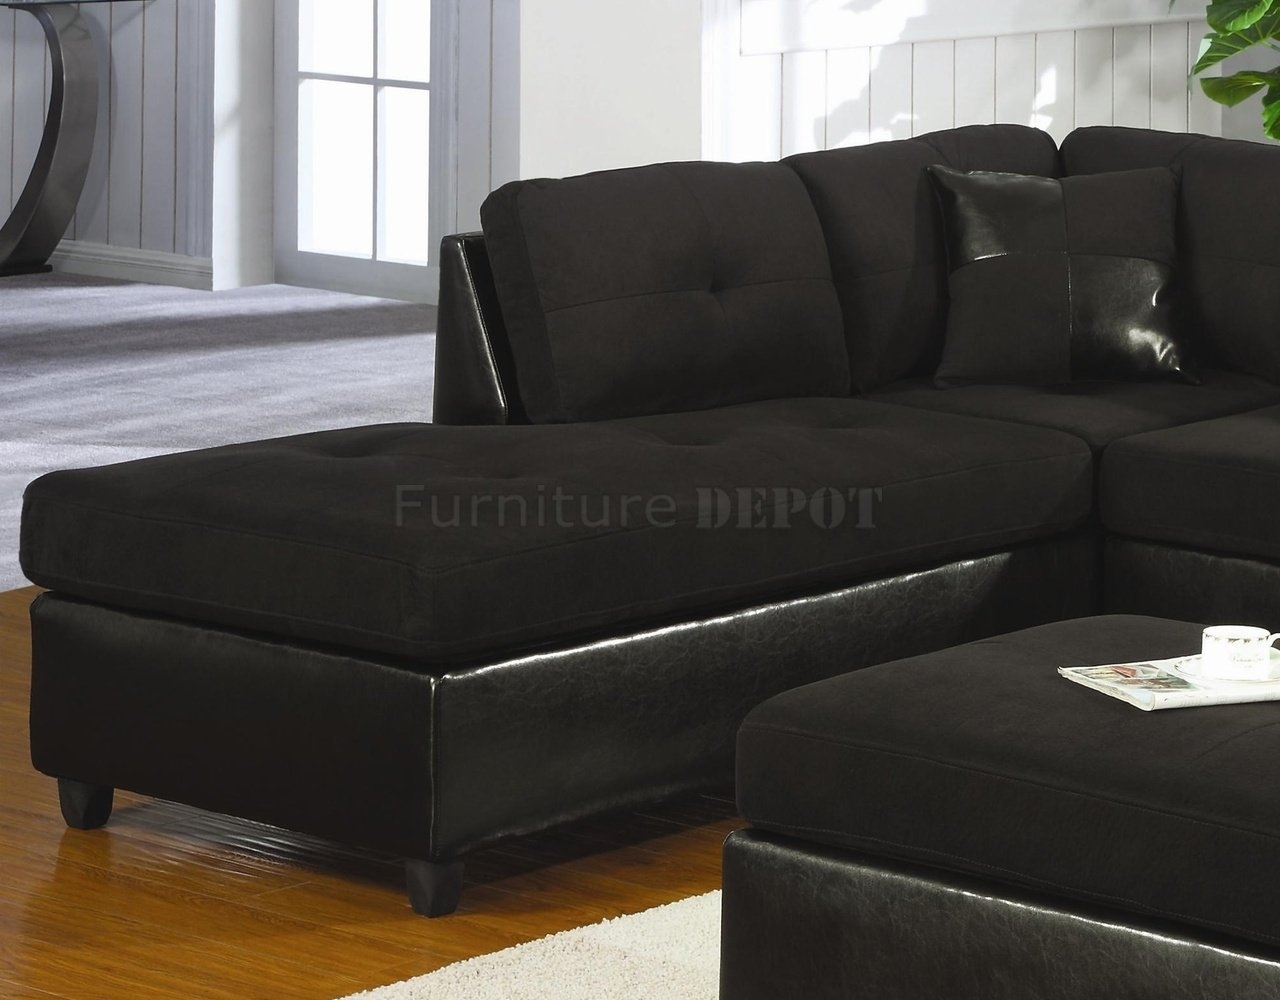 Sectional Sofa Design: Wonderful Black Microfiber Sectional Sofa With Black Leather Sectionals With Ottoman (Image 8 of 10)